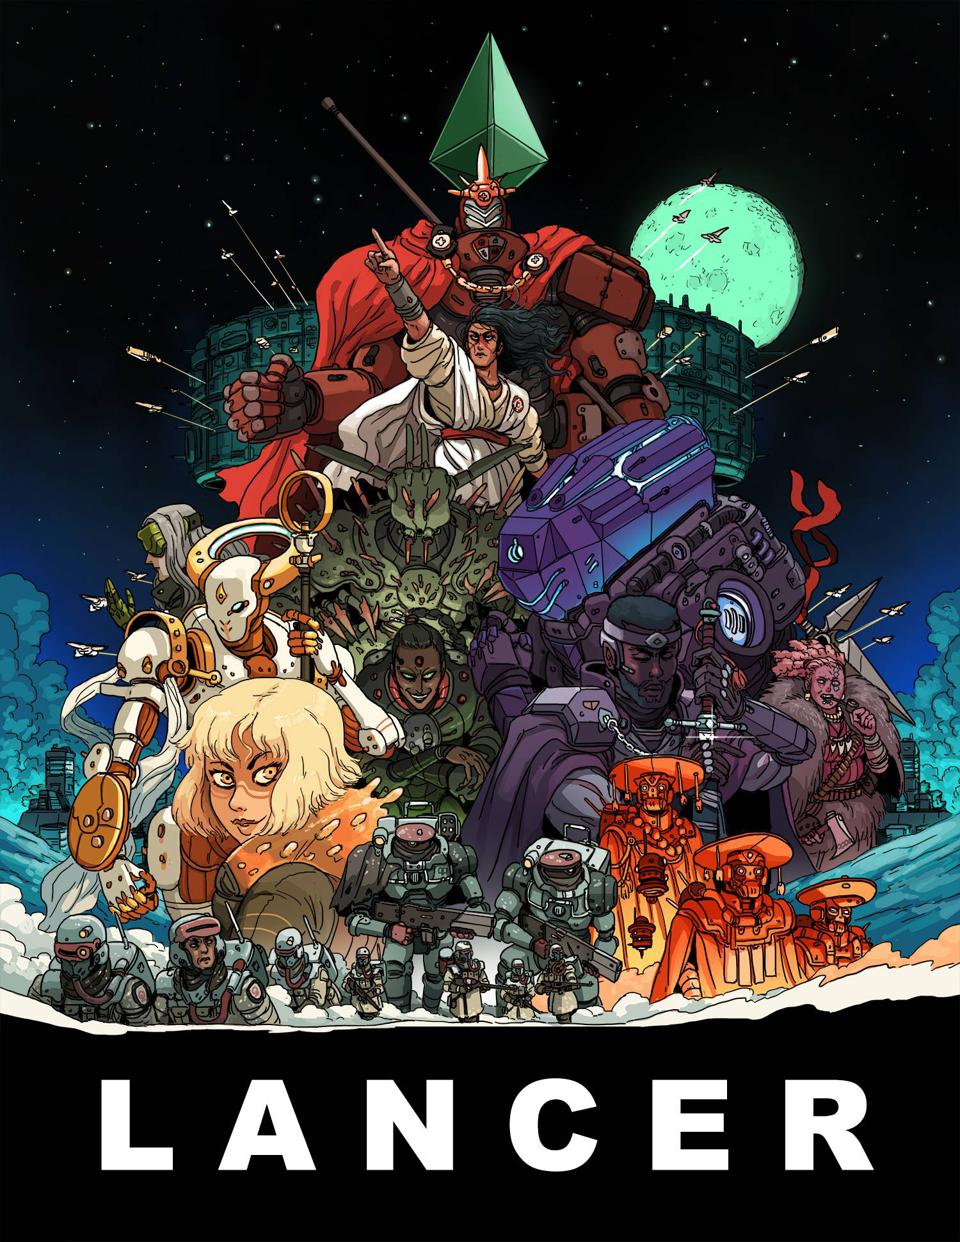 The cover to the Lancer RPG